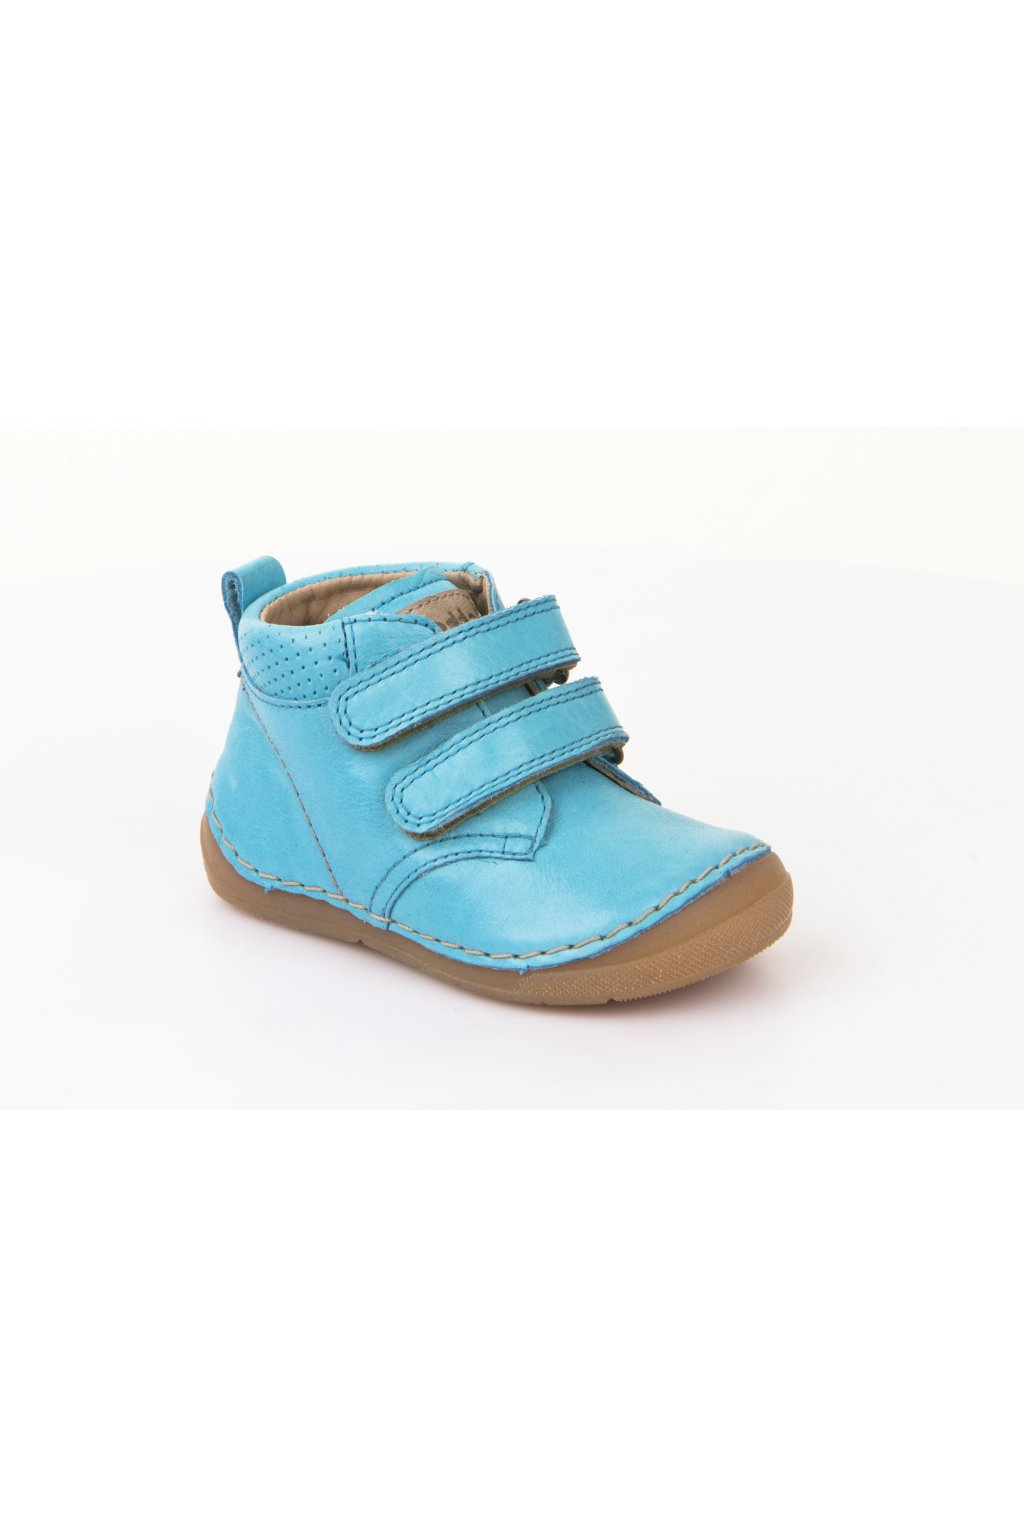 Froddo shoes Turquoise